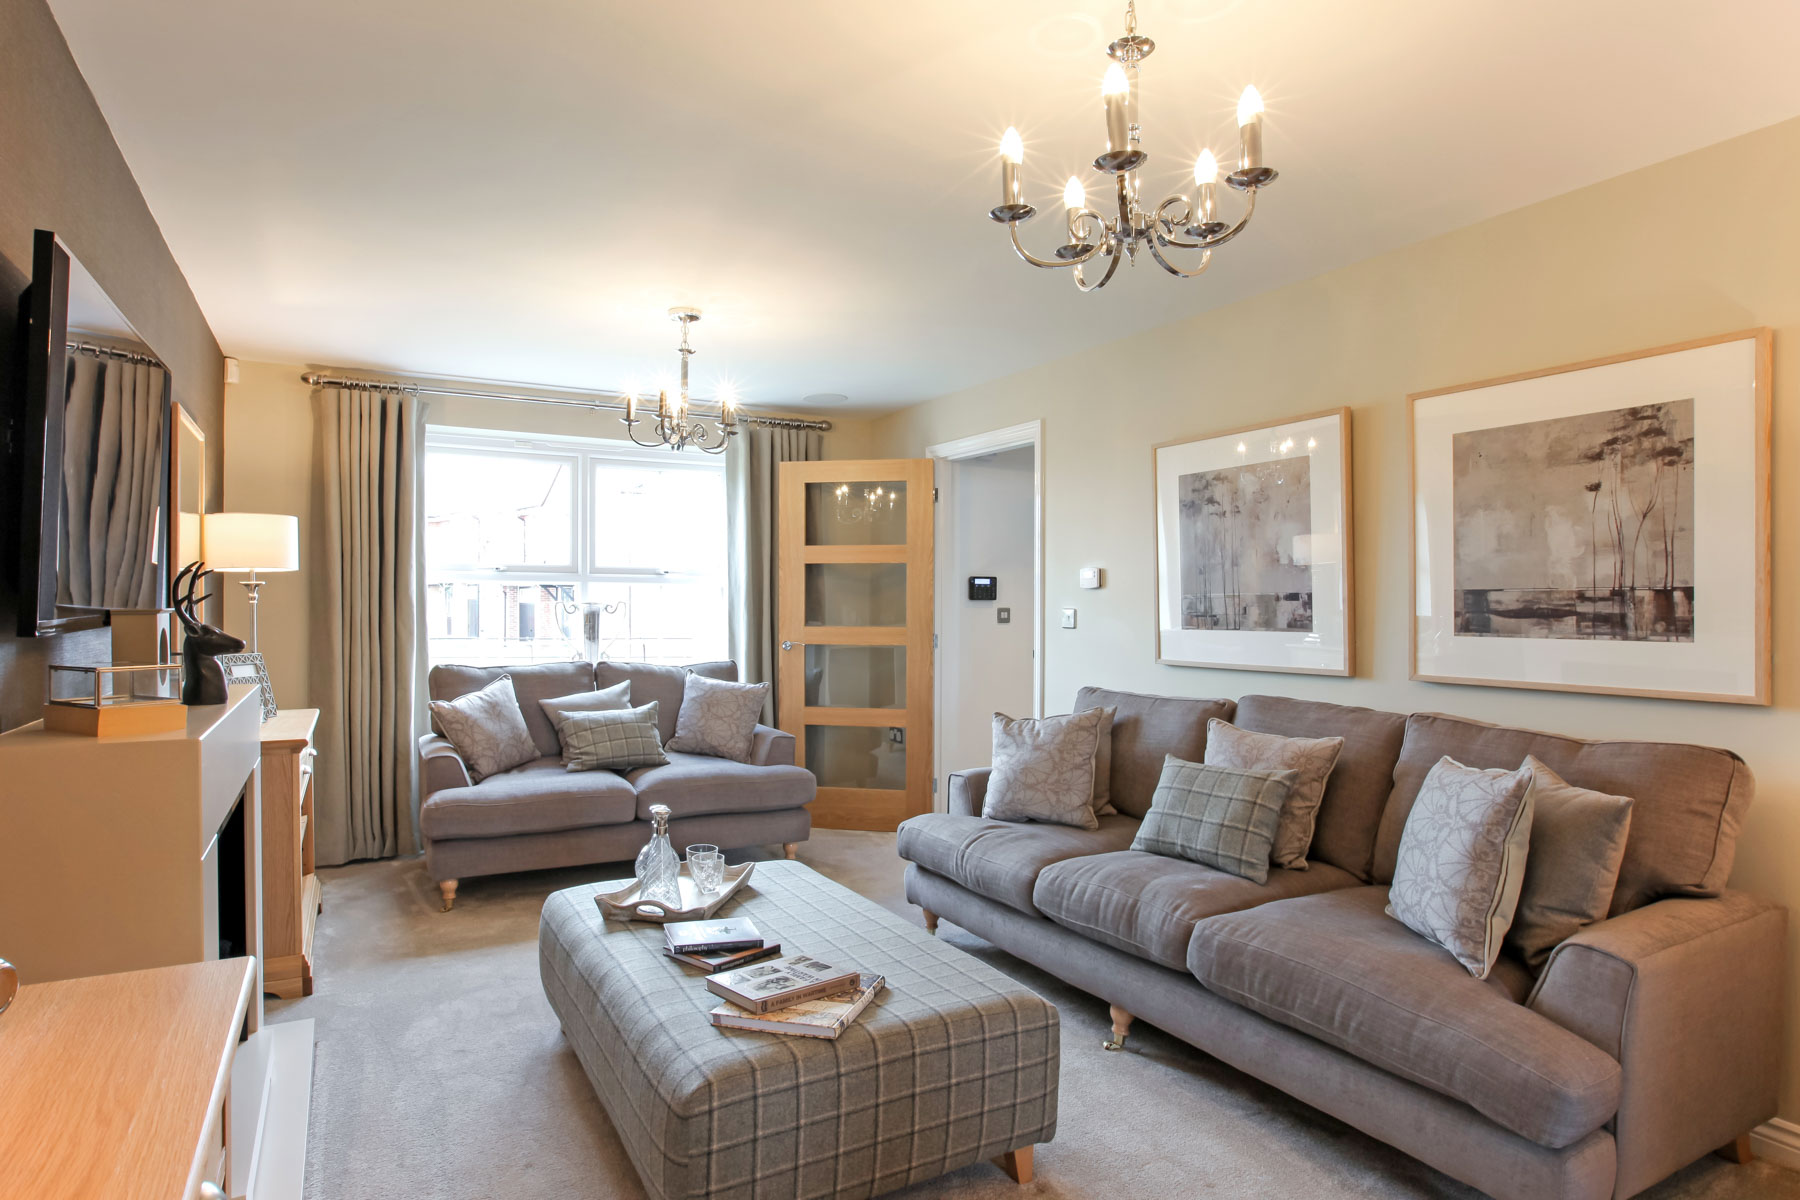 Eynsham_Living_Room